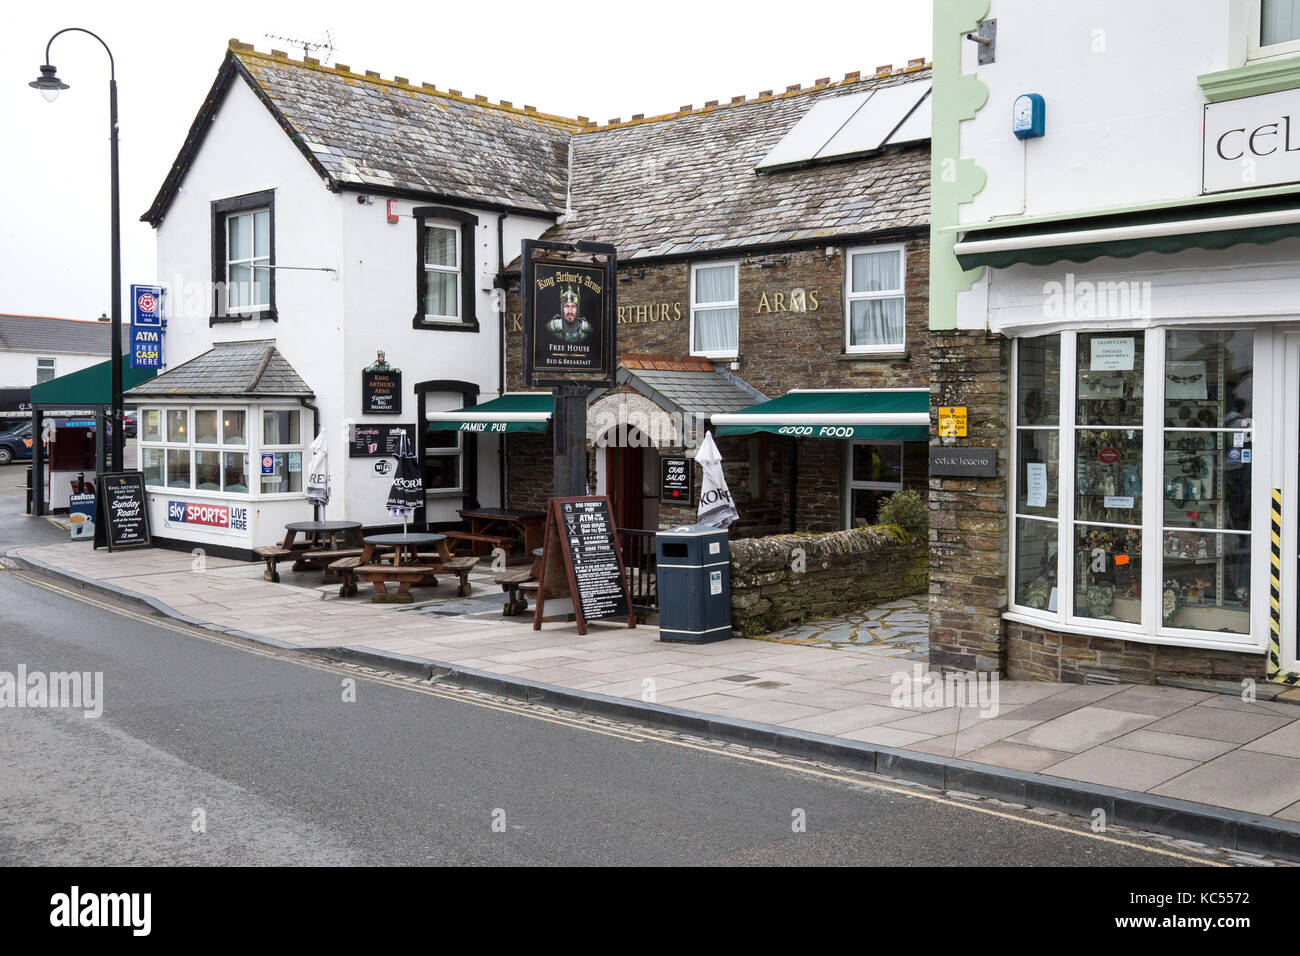 King Arthur's Arms public house, Tintagel, Cornwall - Stock Image